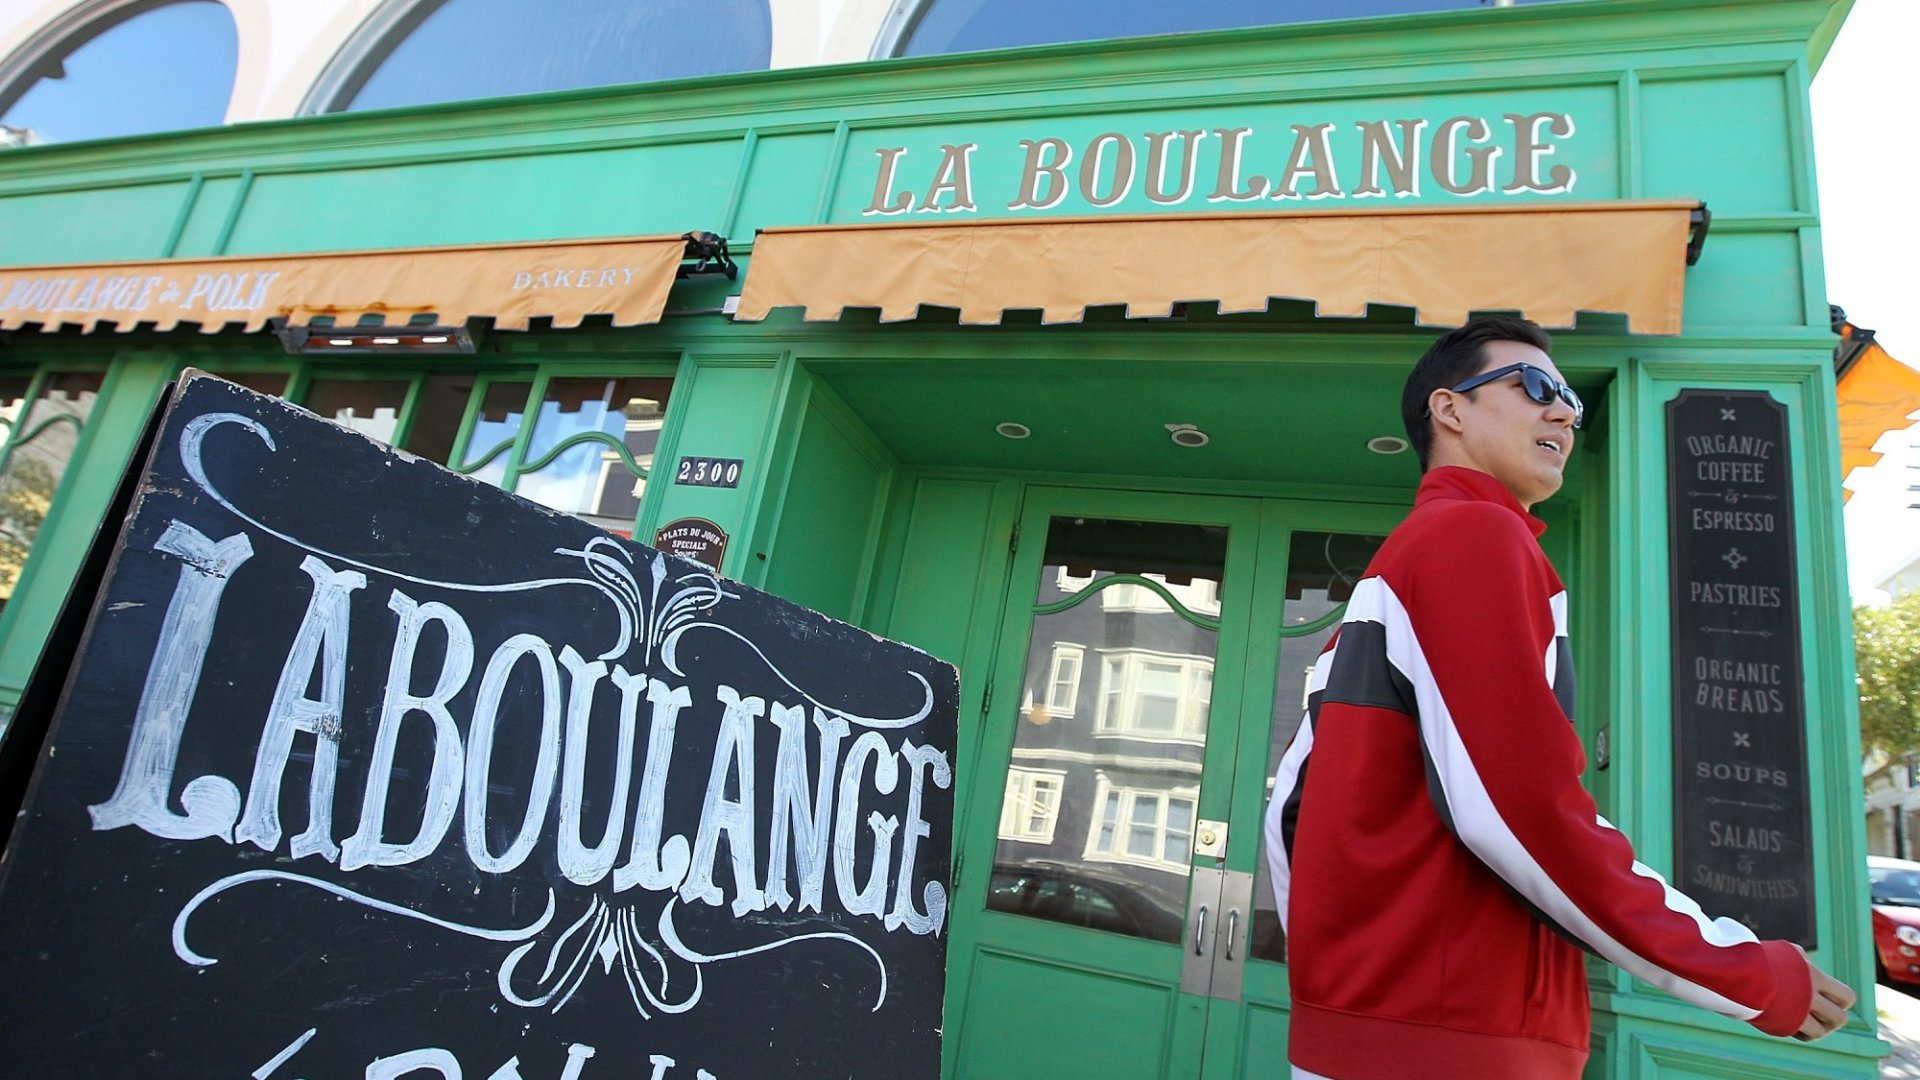 <br>A pedestrian passes by a La Boulange Bakery on June 5, 2012 in San Francisco, California, shortly after Starbucks announced that it was purchasing the bakery chain for $100 million. (Photo by Justin Sullivan/Getty Images)